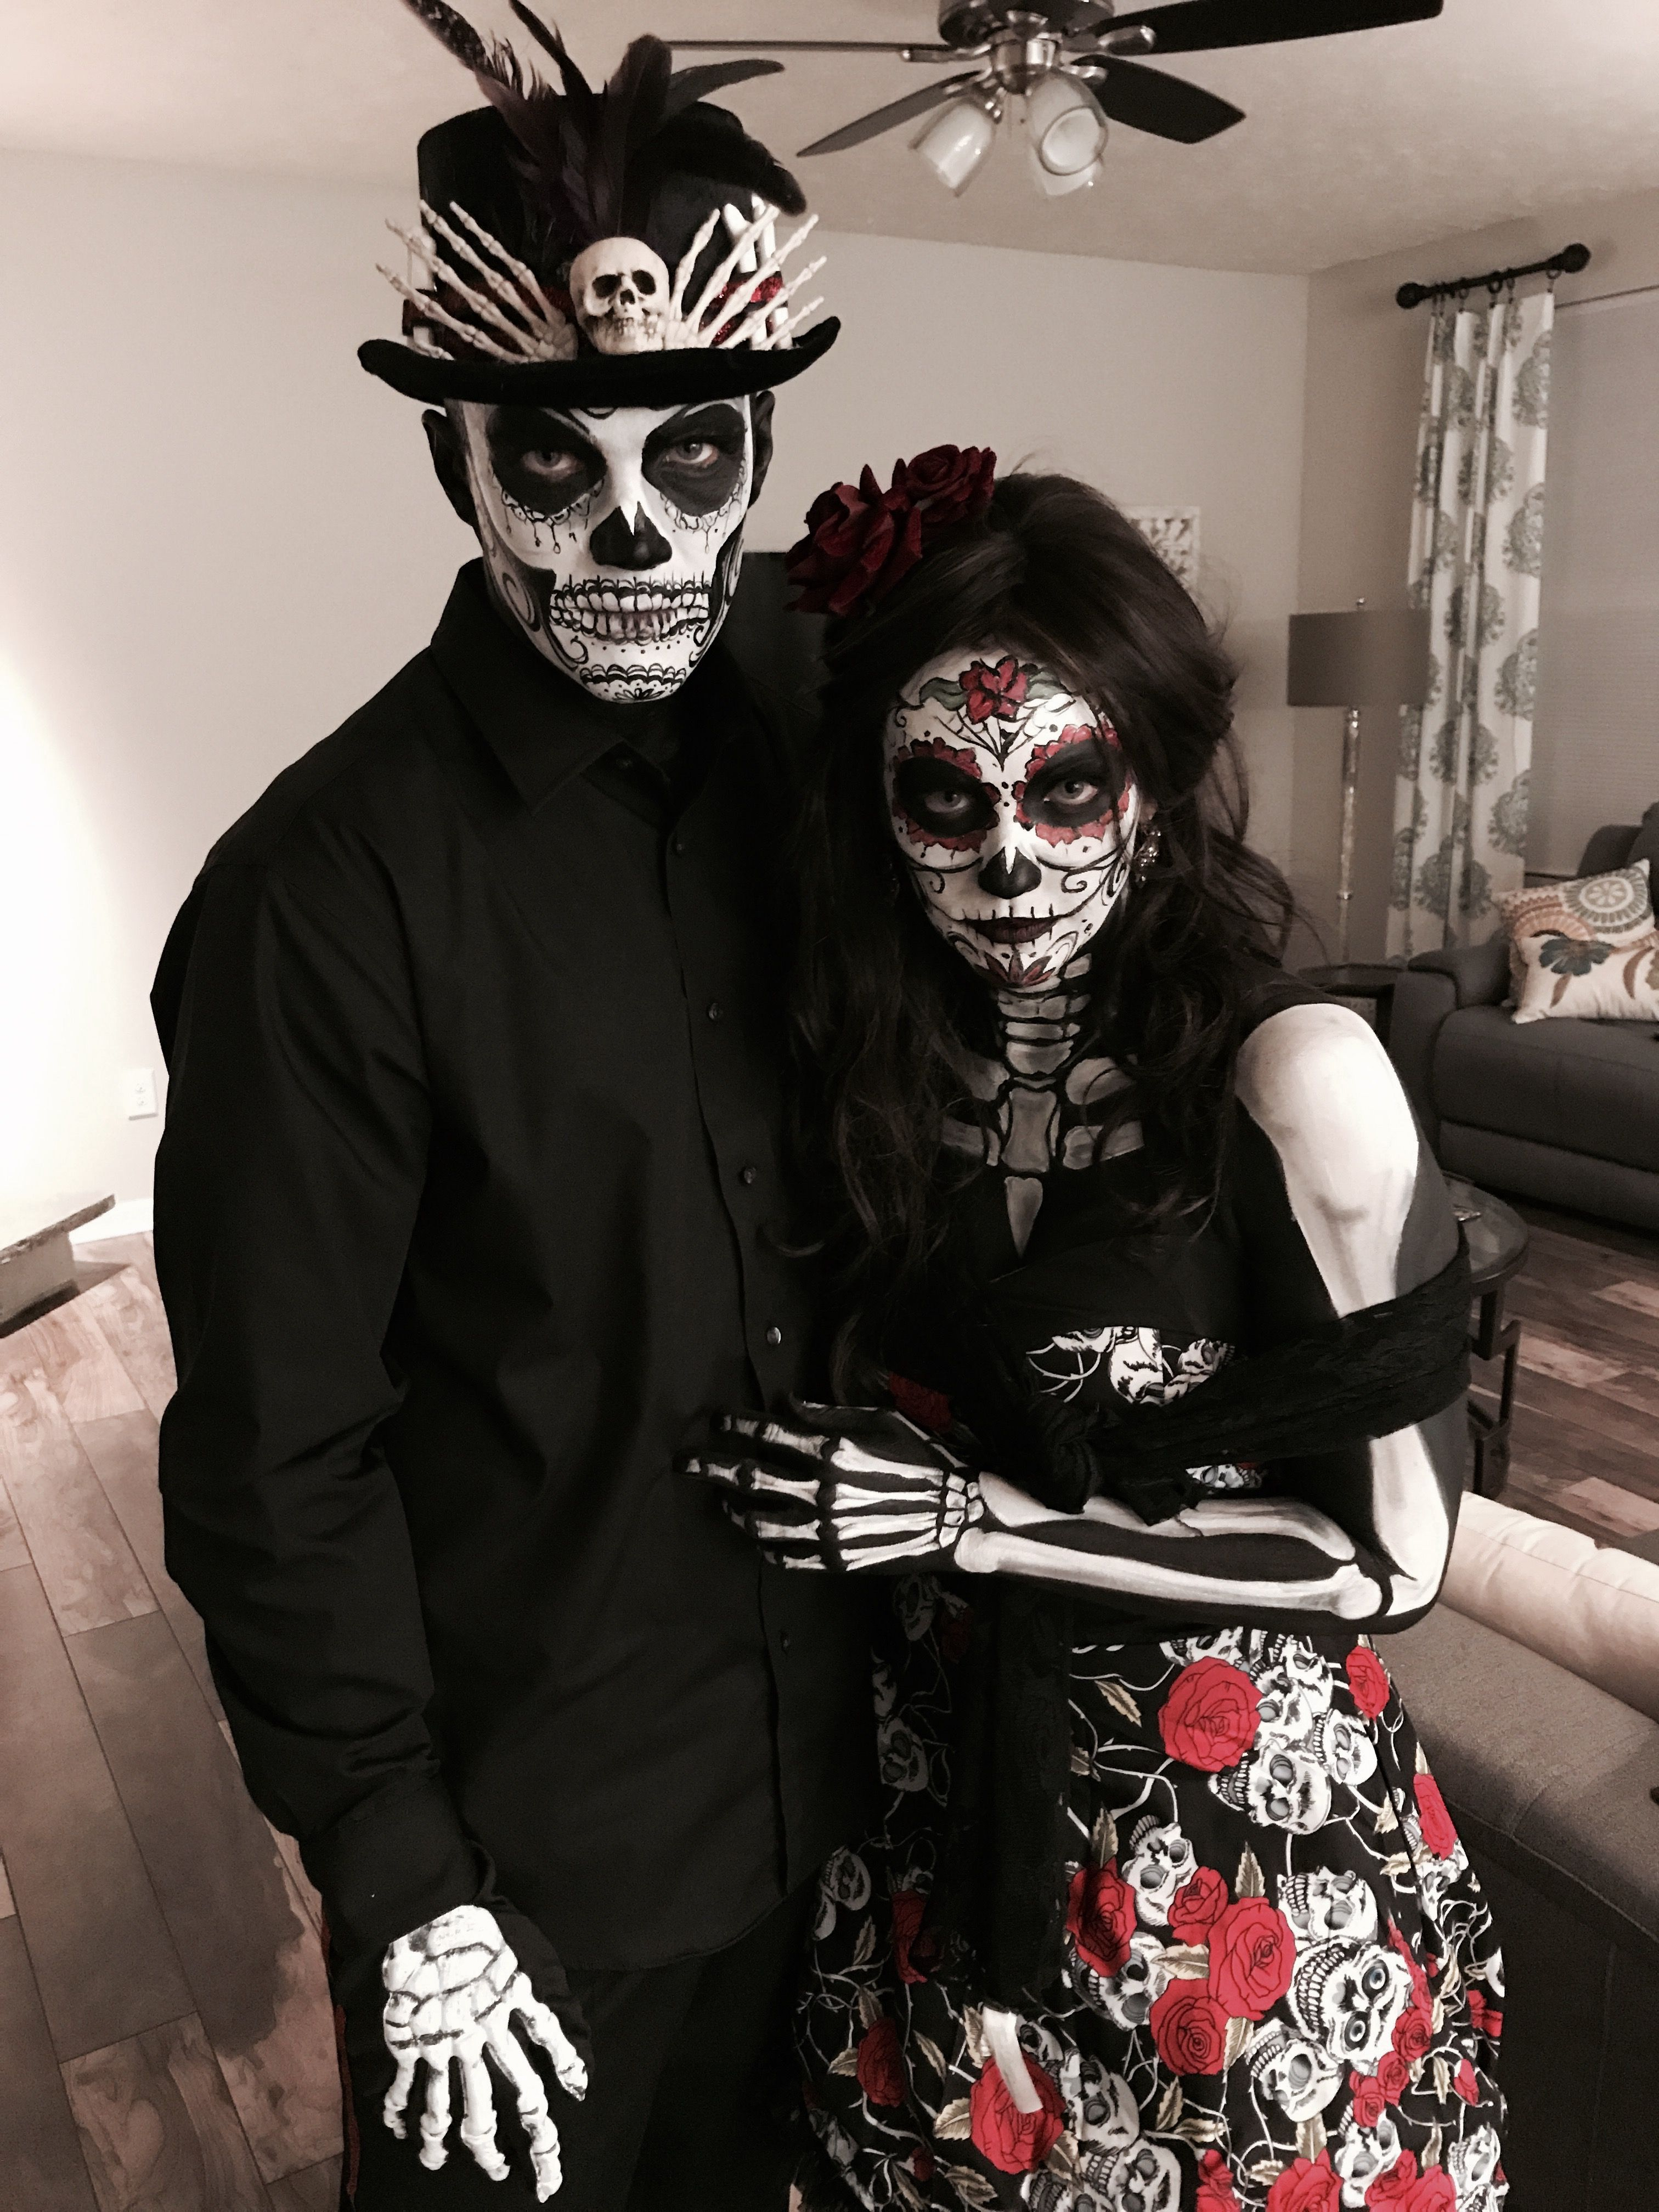 Pin by HeatherHayden on My Halloween (With images) Day